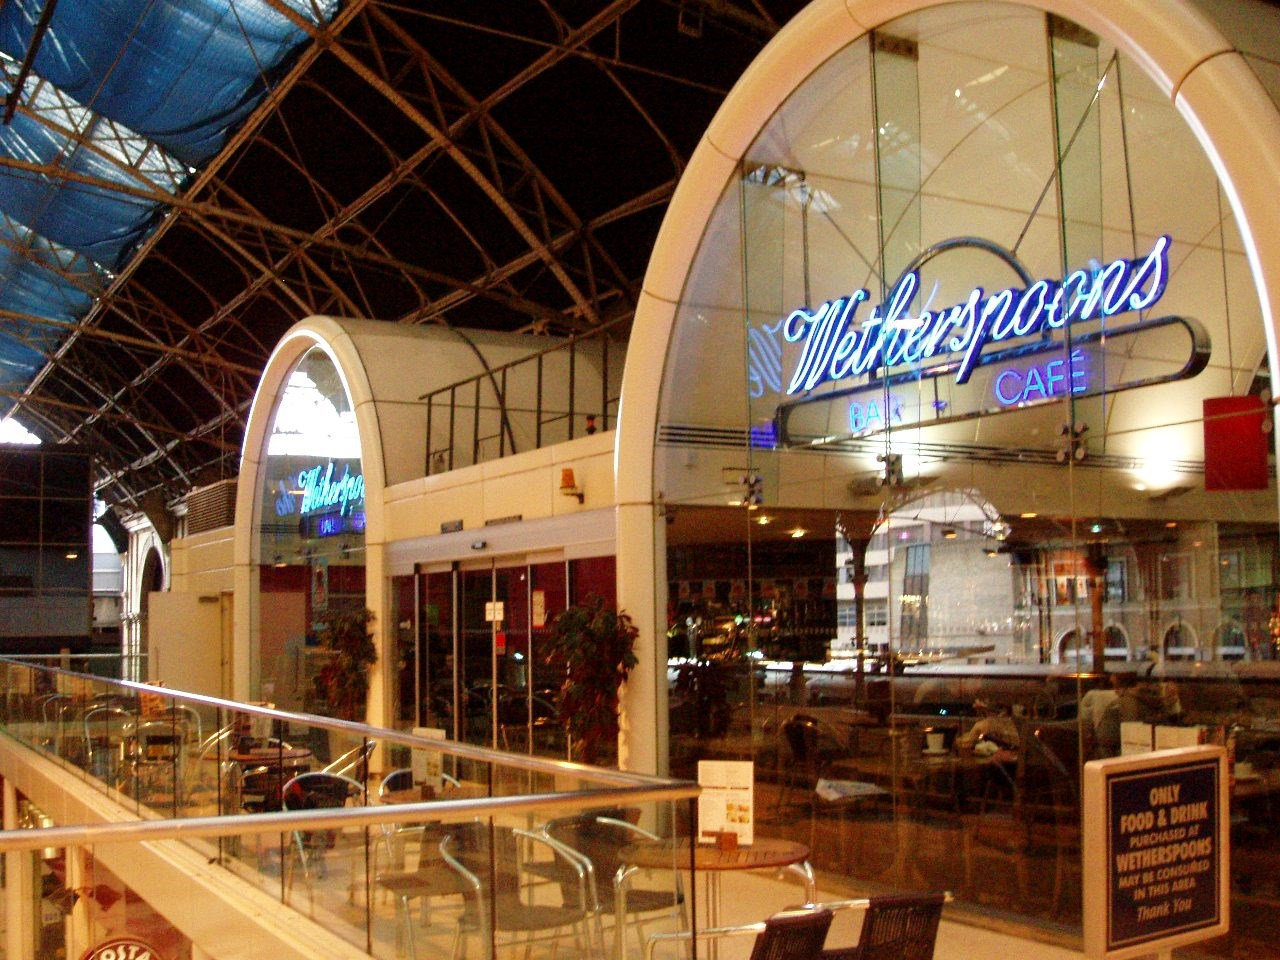 JD Wetherspoon loses 650,000 customer records in database breach